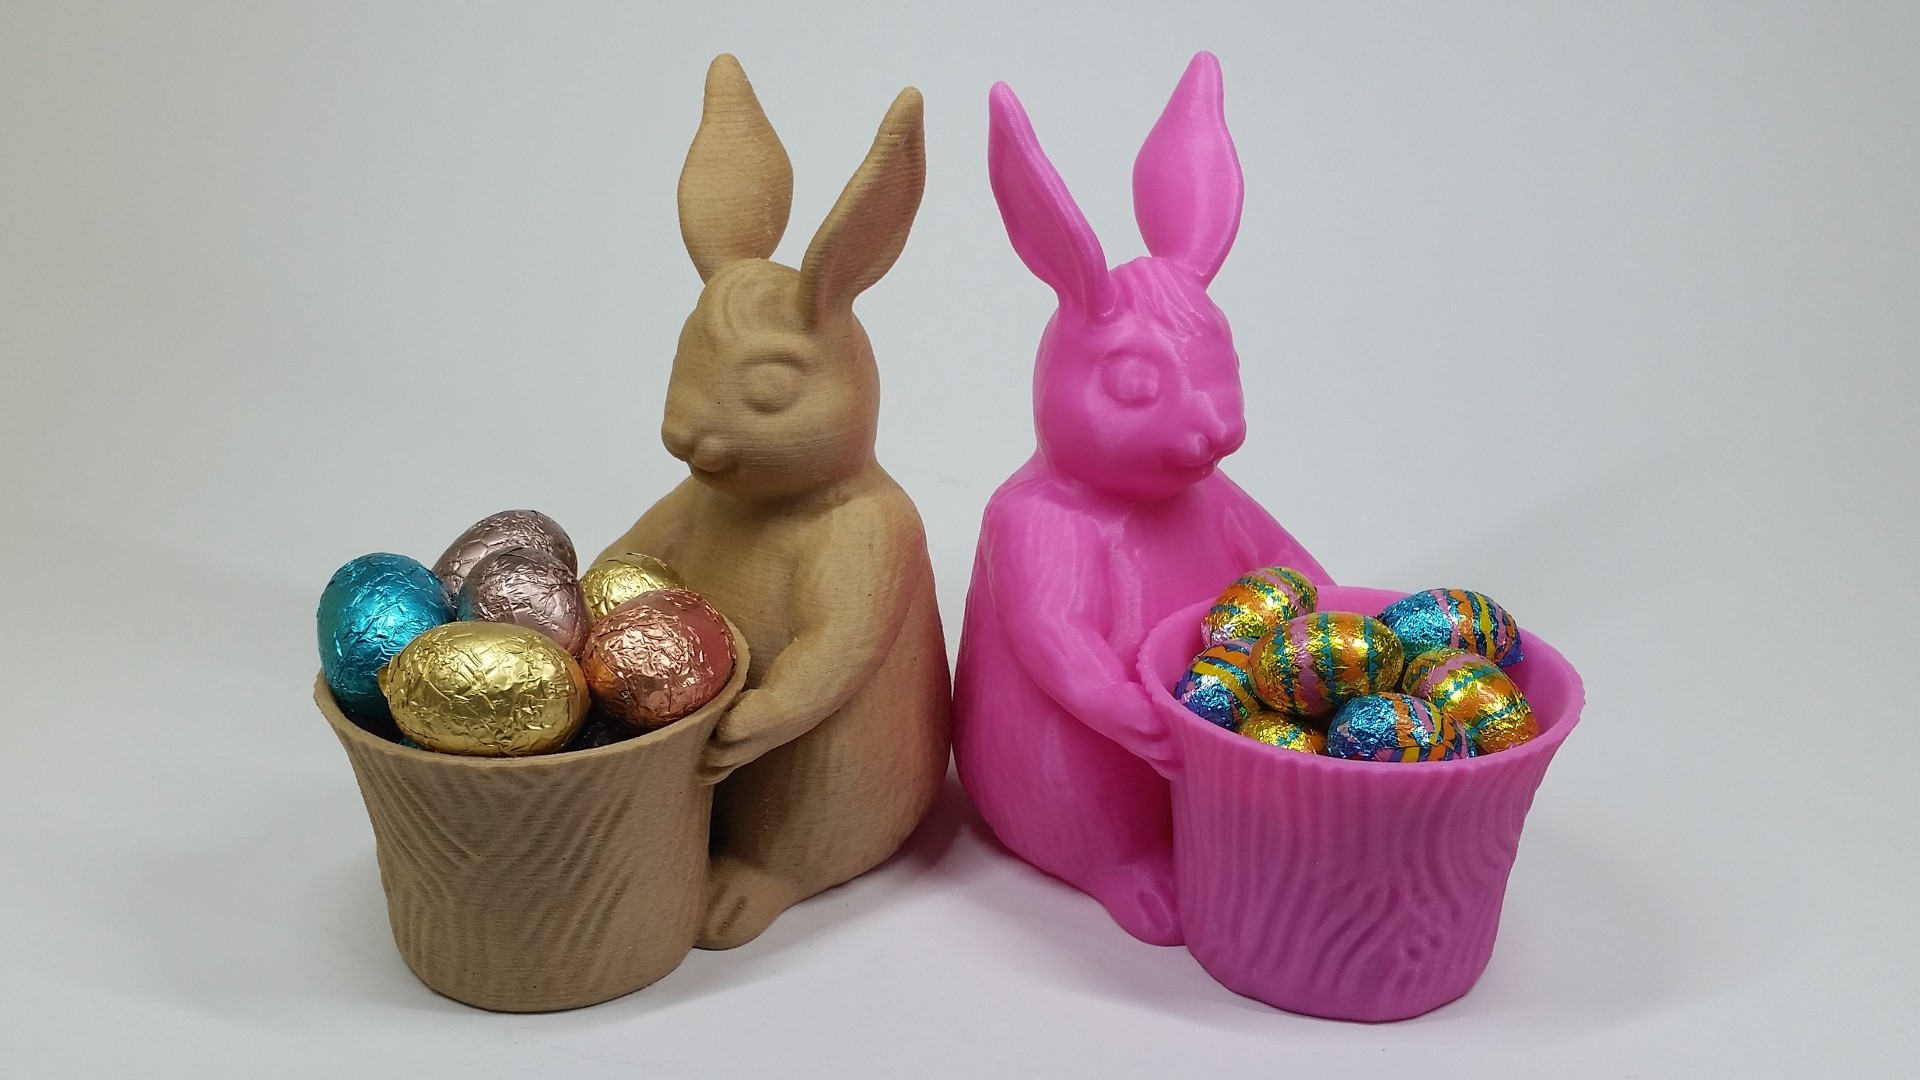 3D Designed in ZBrush - Easter Bunny Themed Pot - YouTube.jpg Télécharger fichier STL gratuit Jouet/pot/plante de Pâques • Plan pour impression 3D, MaxFunkner